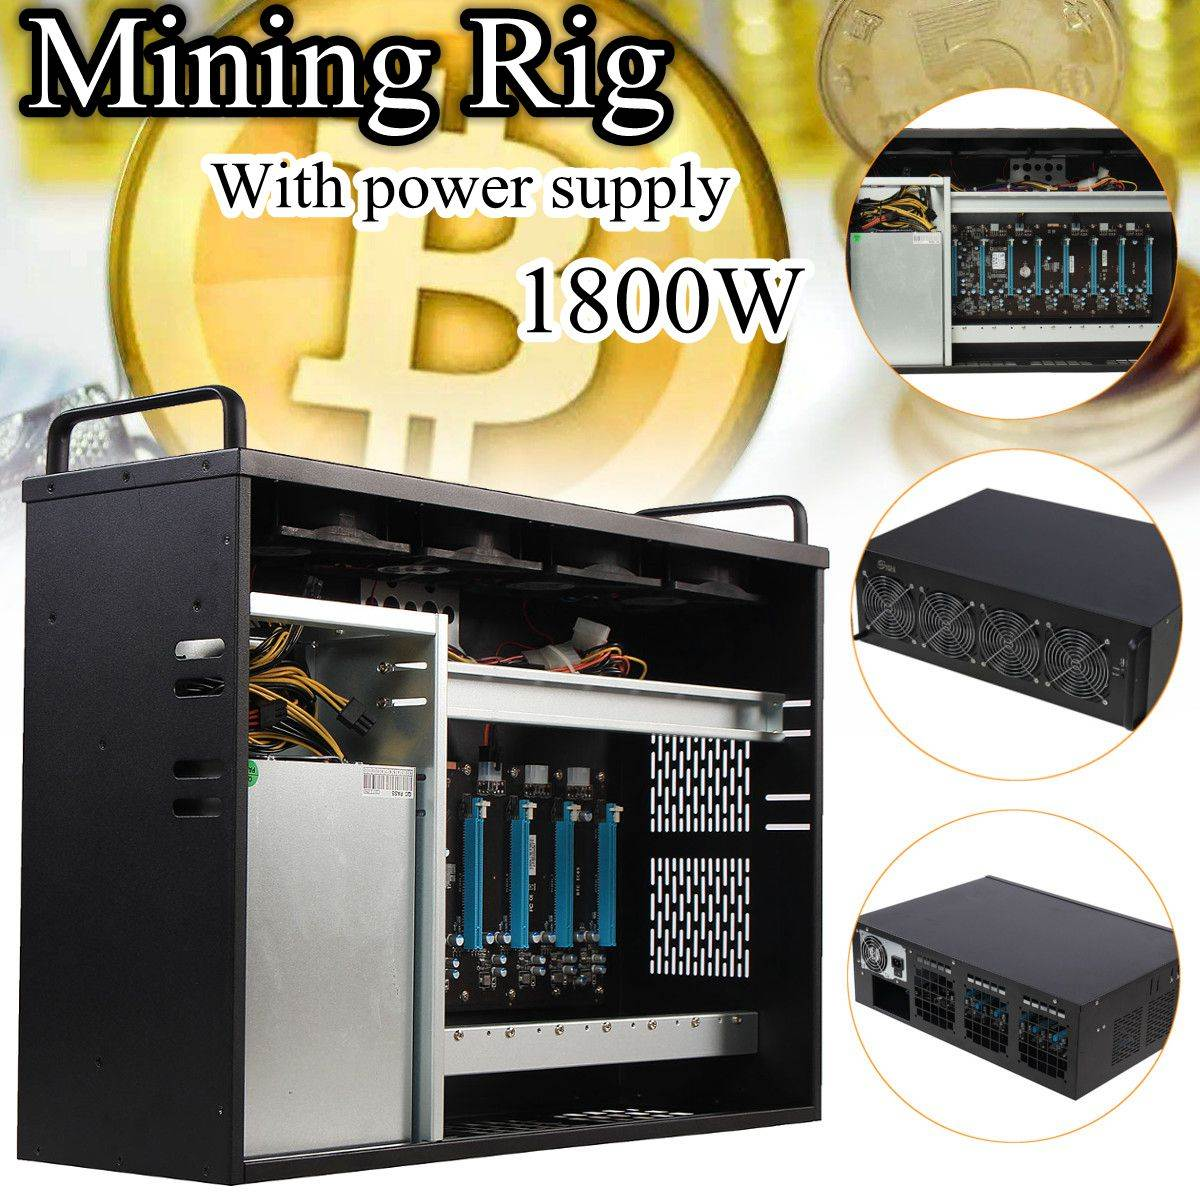 Mining Rig Miner Mining Machine Chassis Mounting BTC IC6S Motherboard Supporting Up To 8 GPU Without Power Supply mining rig miner mining machine chassis mounting btc ic6s motherboard supporting up to 8 gpu without power supply